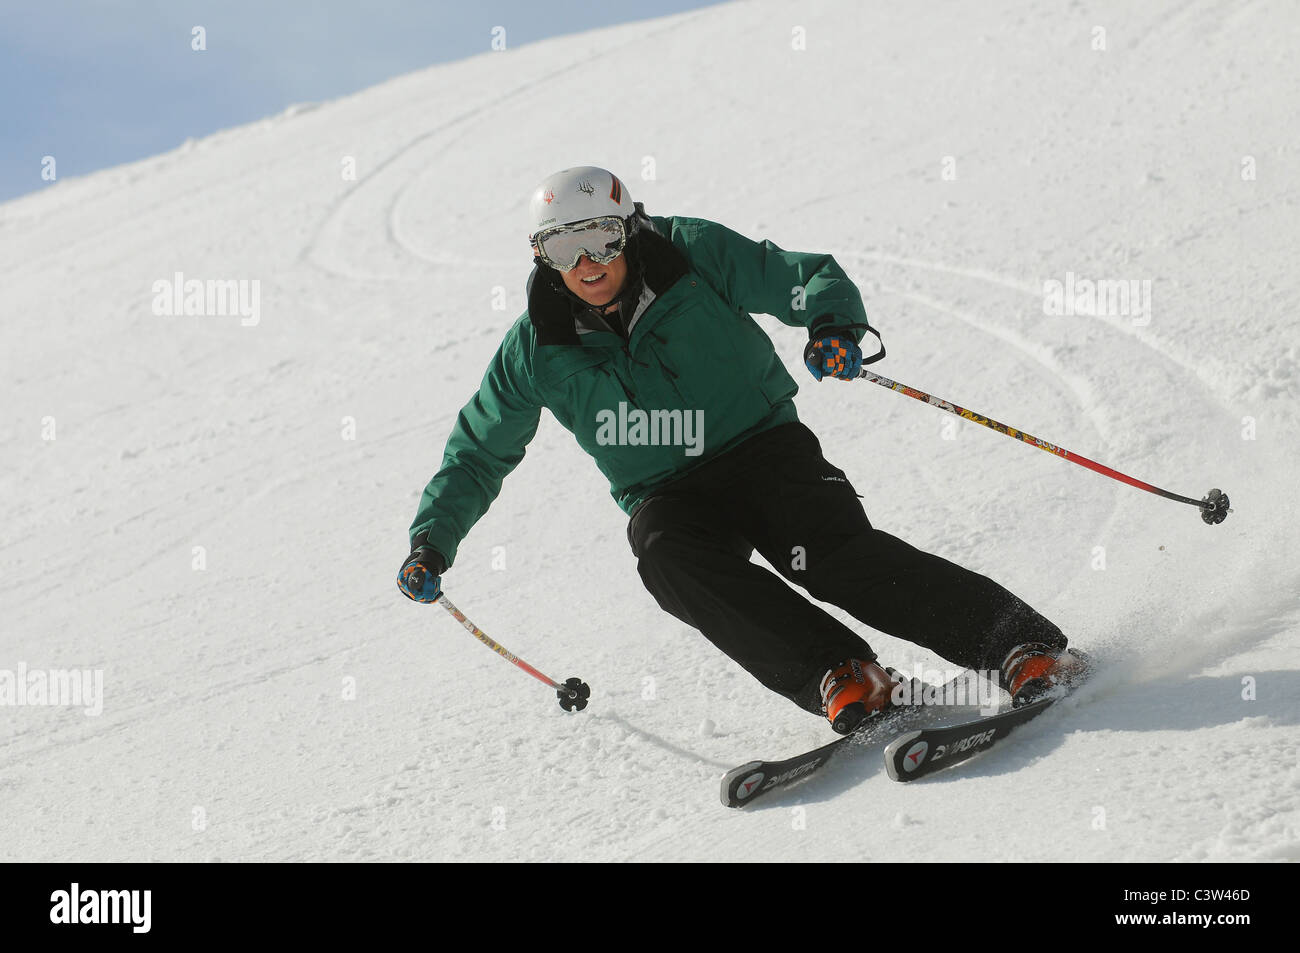 A skier carving turns on piste. - Stock Image